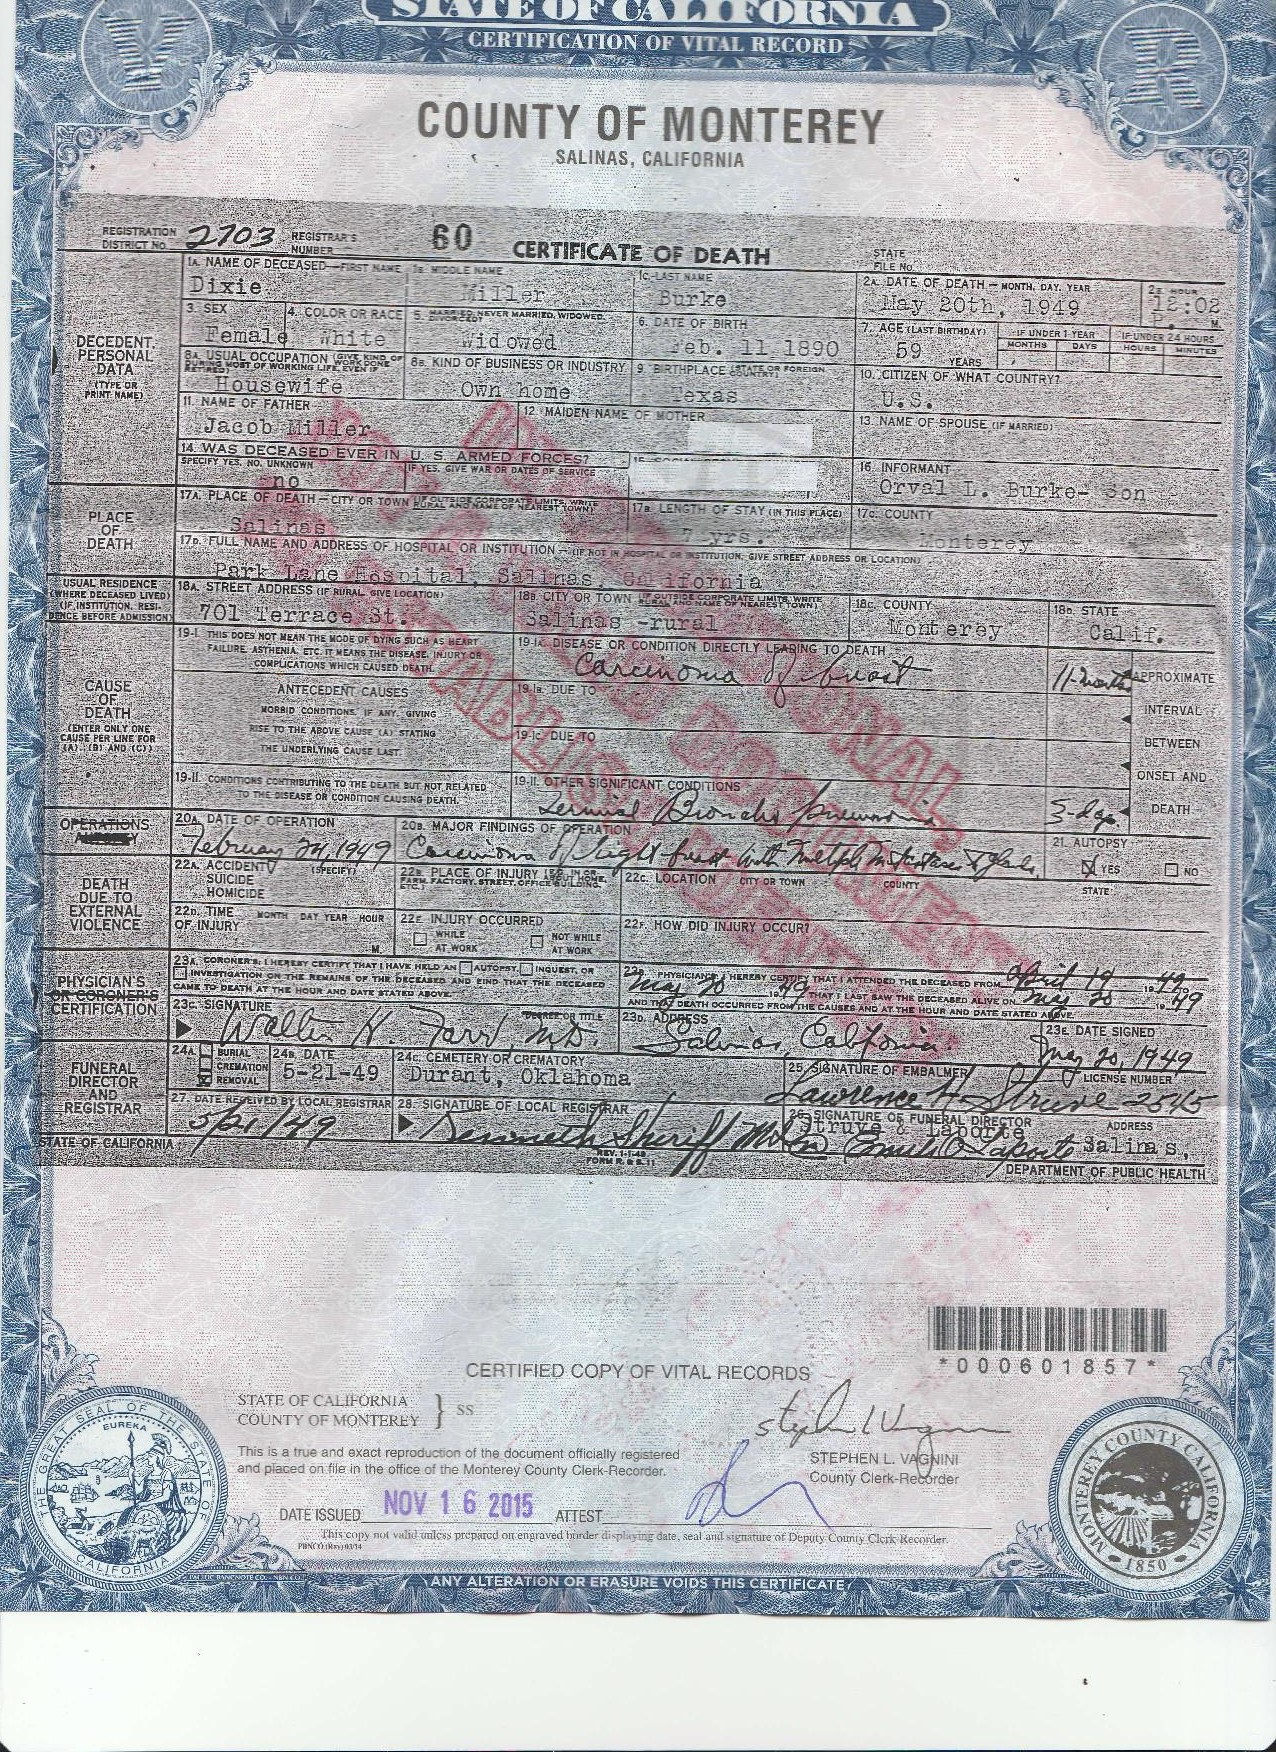 Dixie dorothea miller burke 1890 1949 find a grave memorial dixie miller burkes death certificate public record i received a non official copy from the monterrey county california court house xflitez Choice Image